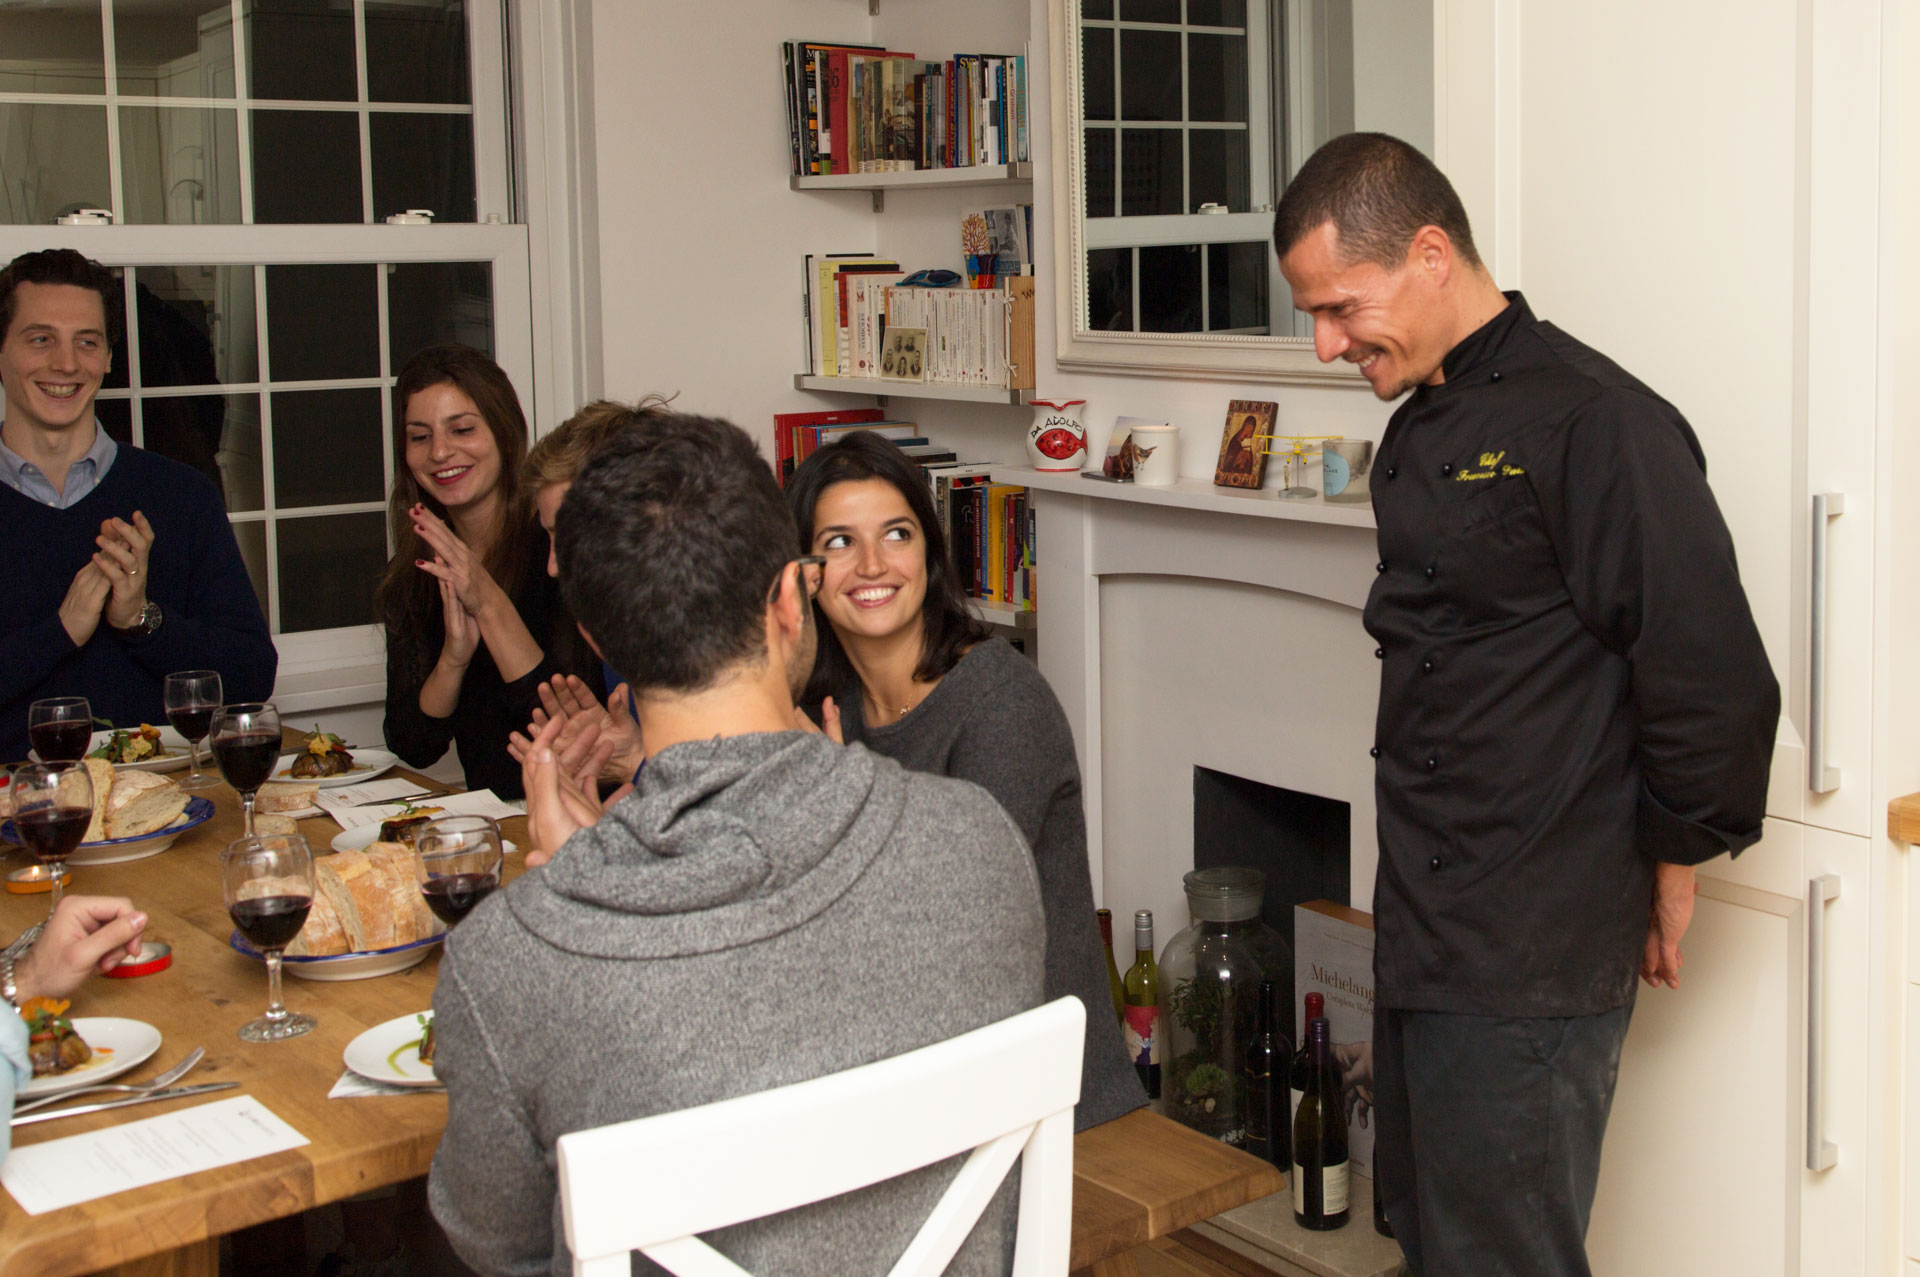 Reena Patel throws a private dinner party with La Belle Assiette